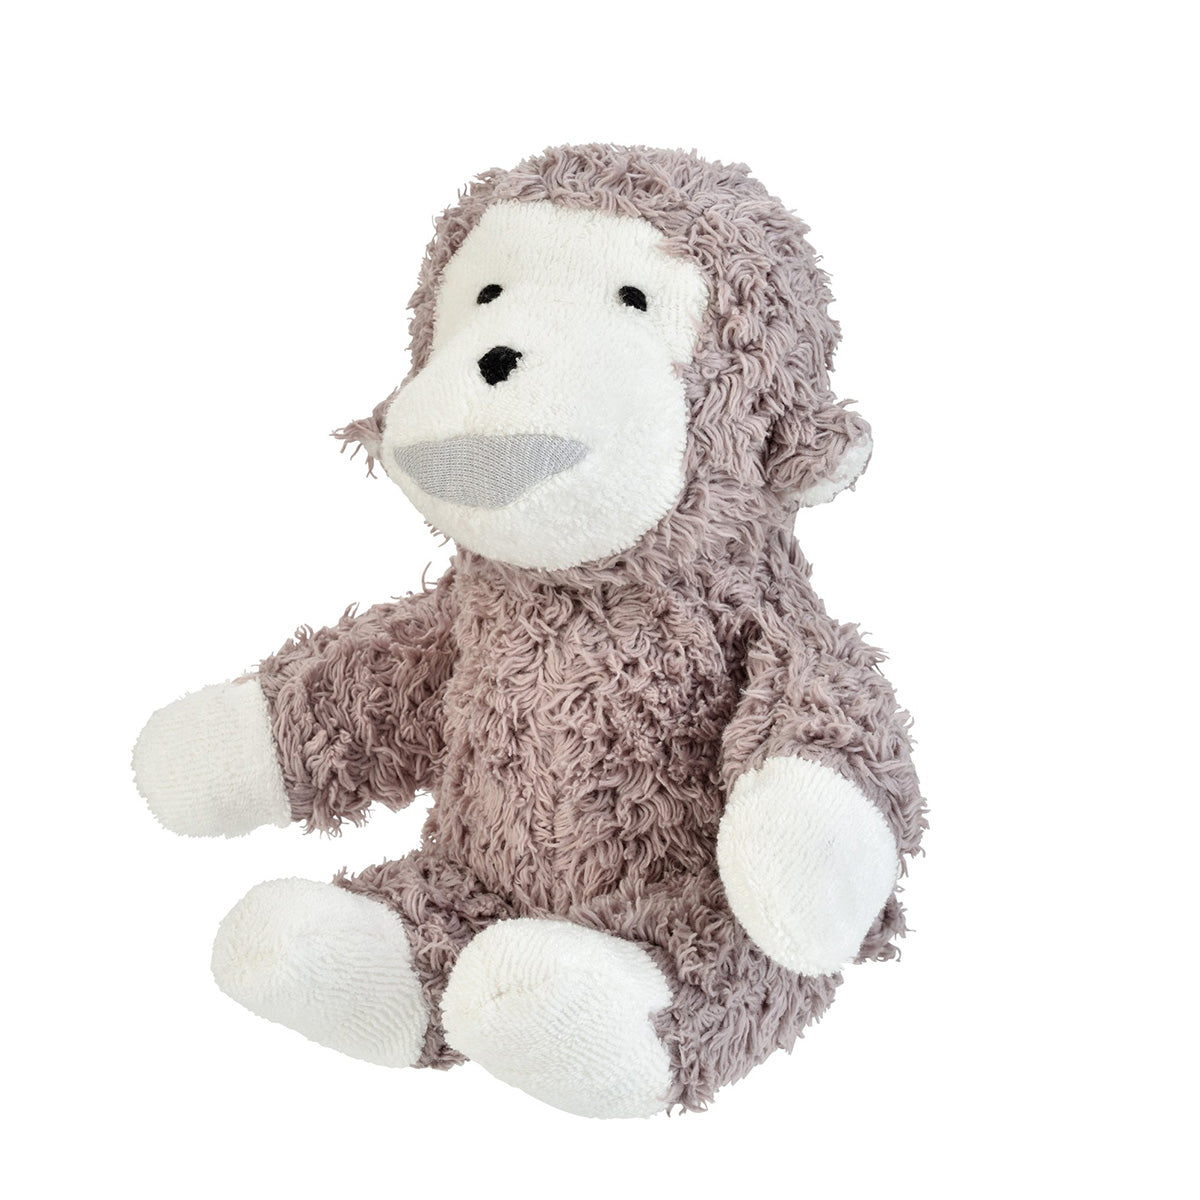 Under the Nile Organic Chip the Chimpanzee Stuffed Animal Toy